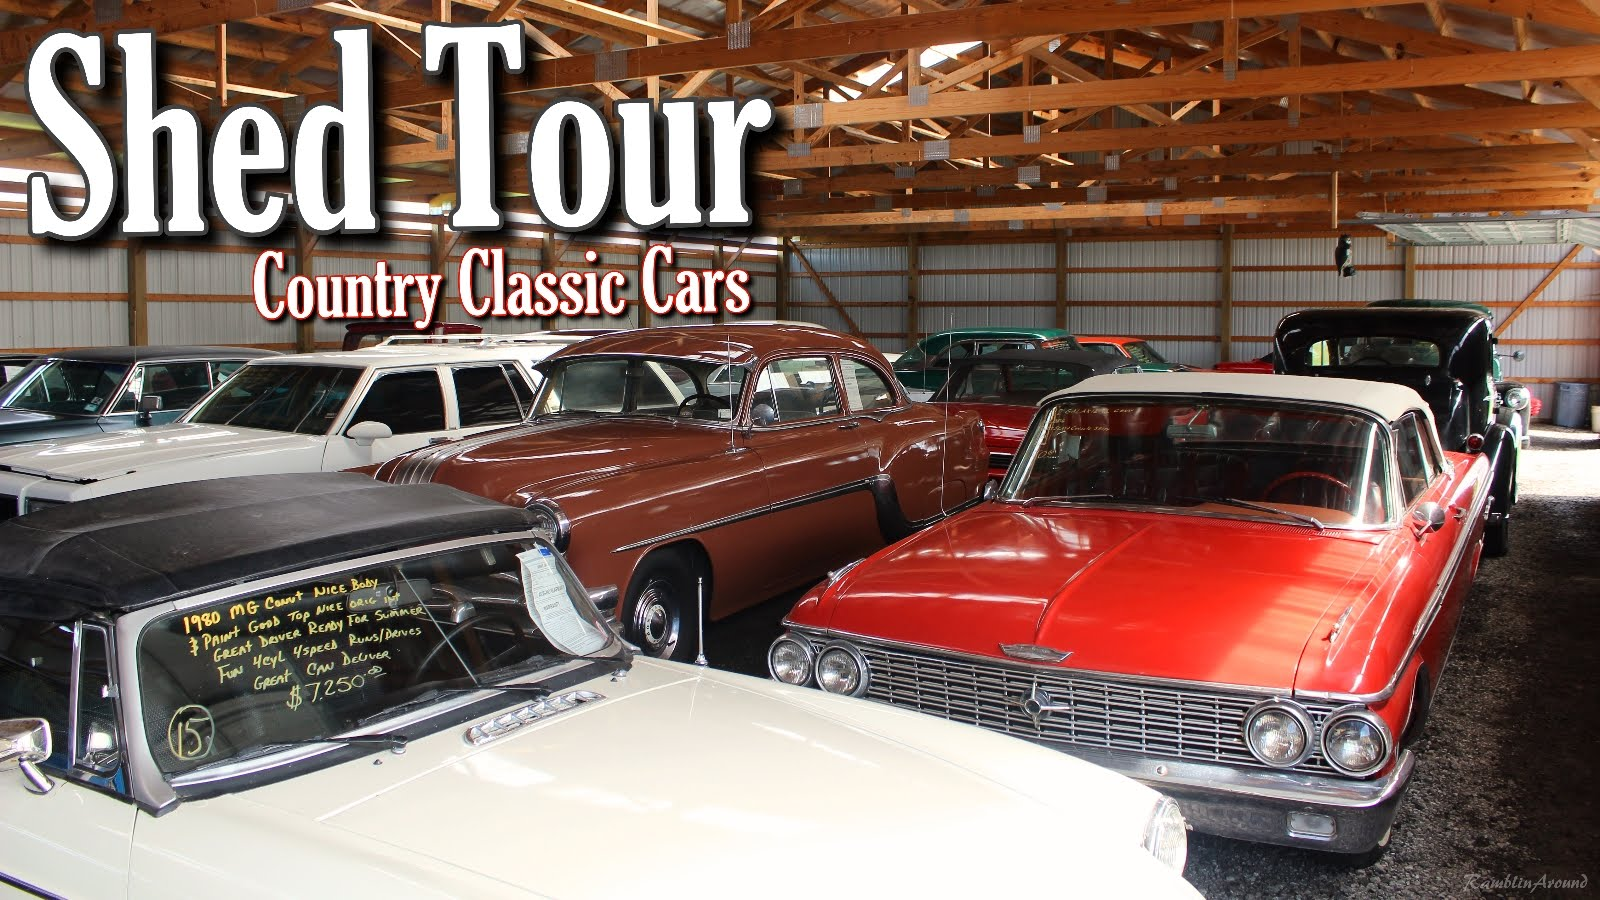 Do Not Miss This Awesome Country Classic Cars Shed Tour